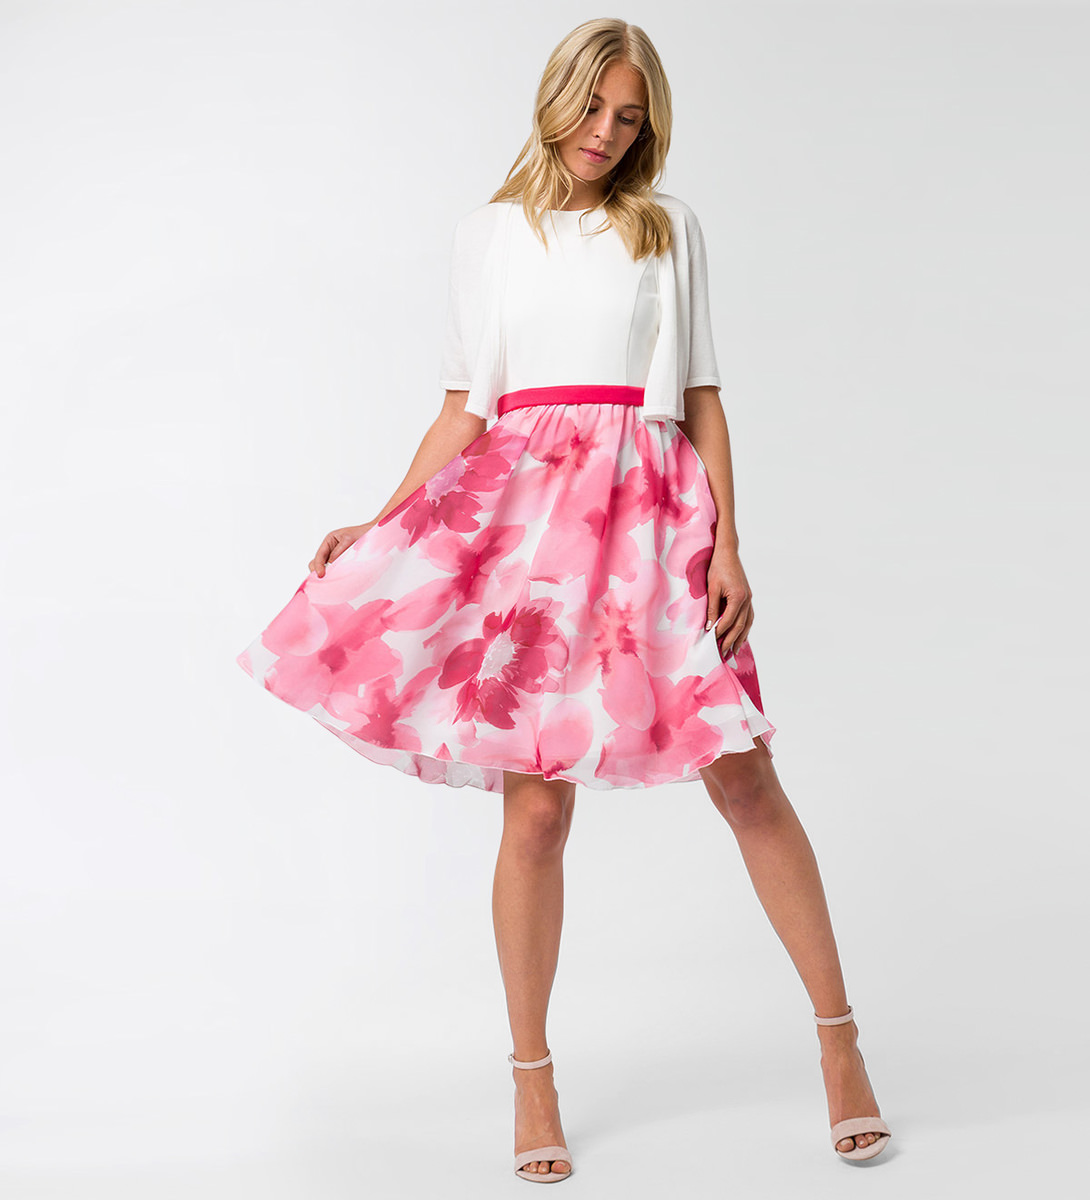 Kleid mit Taillenband in bright pink